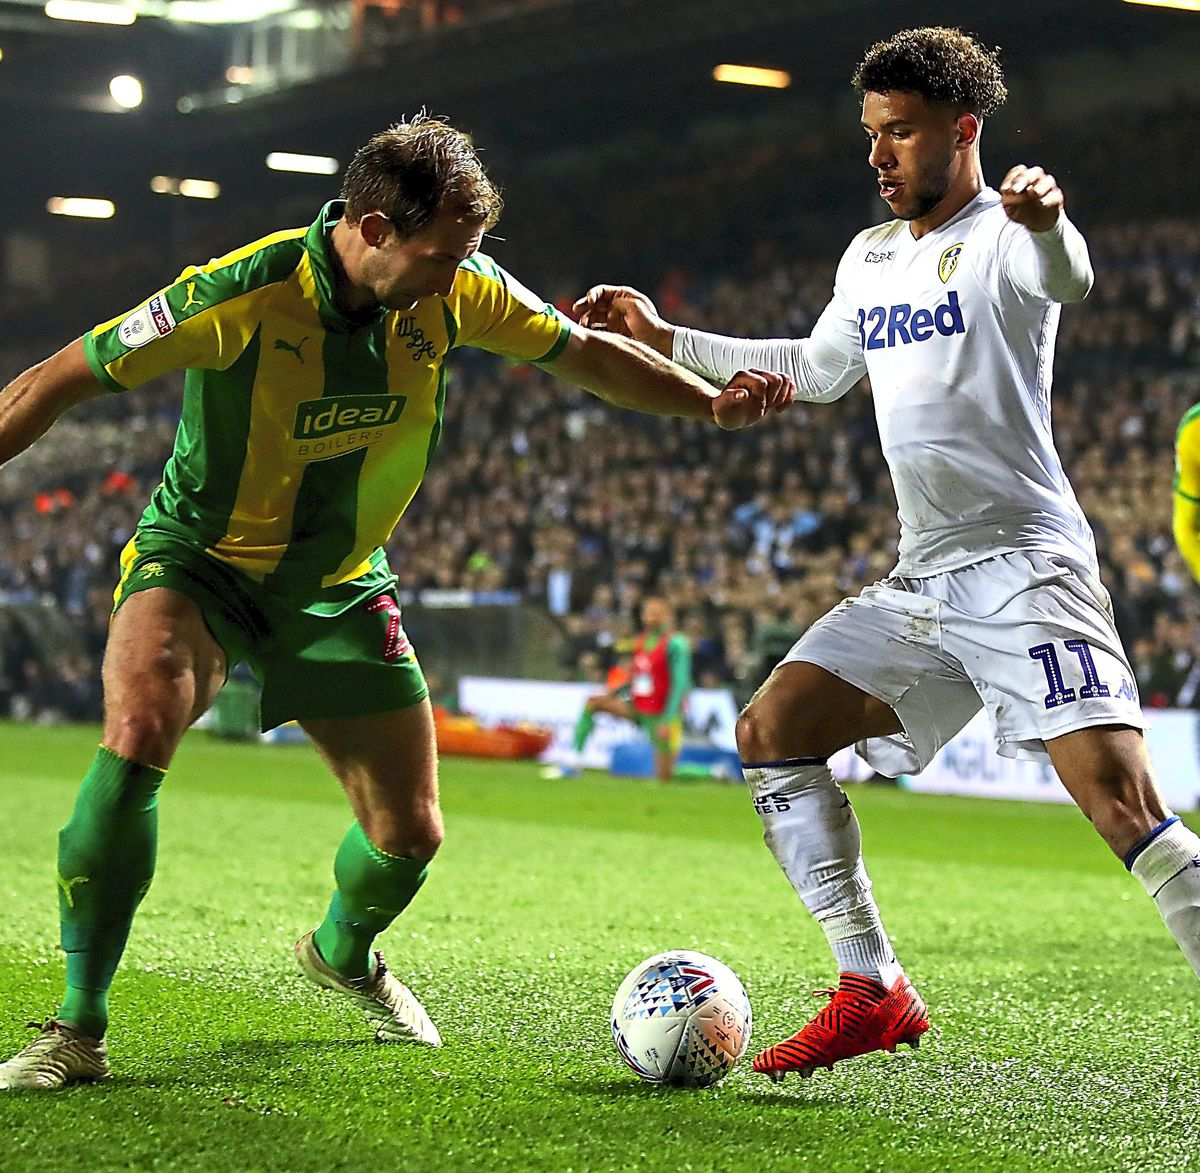 Tyler Roberts was man of the match and set up two Leeds goals. (AMA)